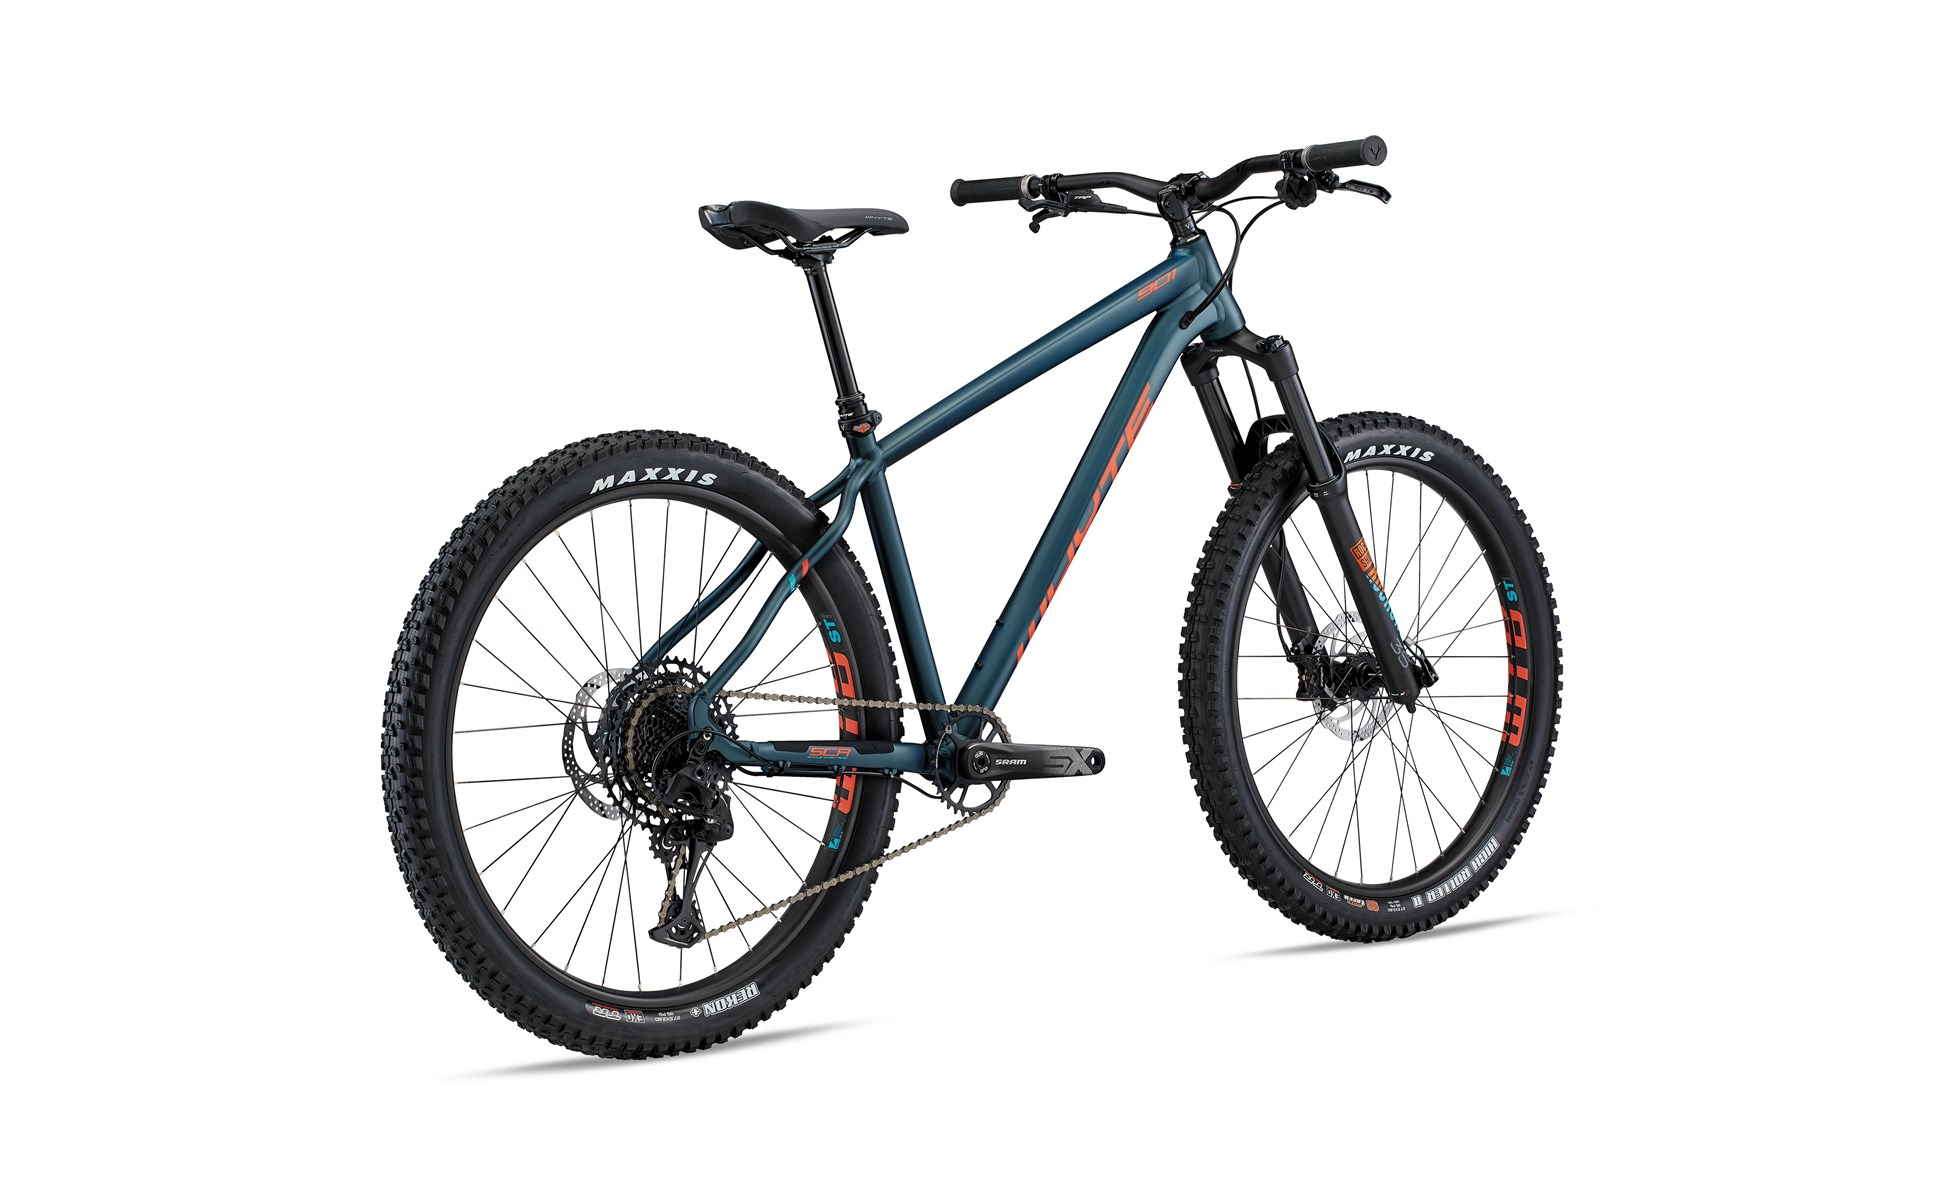 Fair Trading Licence Check >> 2020 Whyte 901 V2 Trail Hardtail Mountain Bike £1,399.00